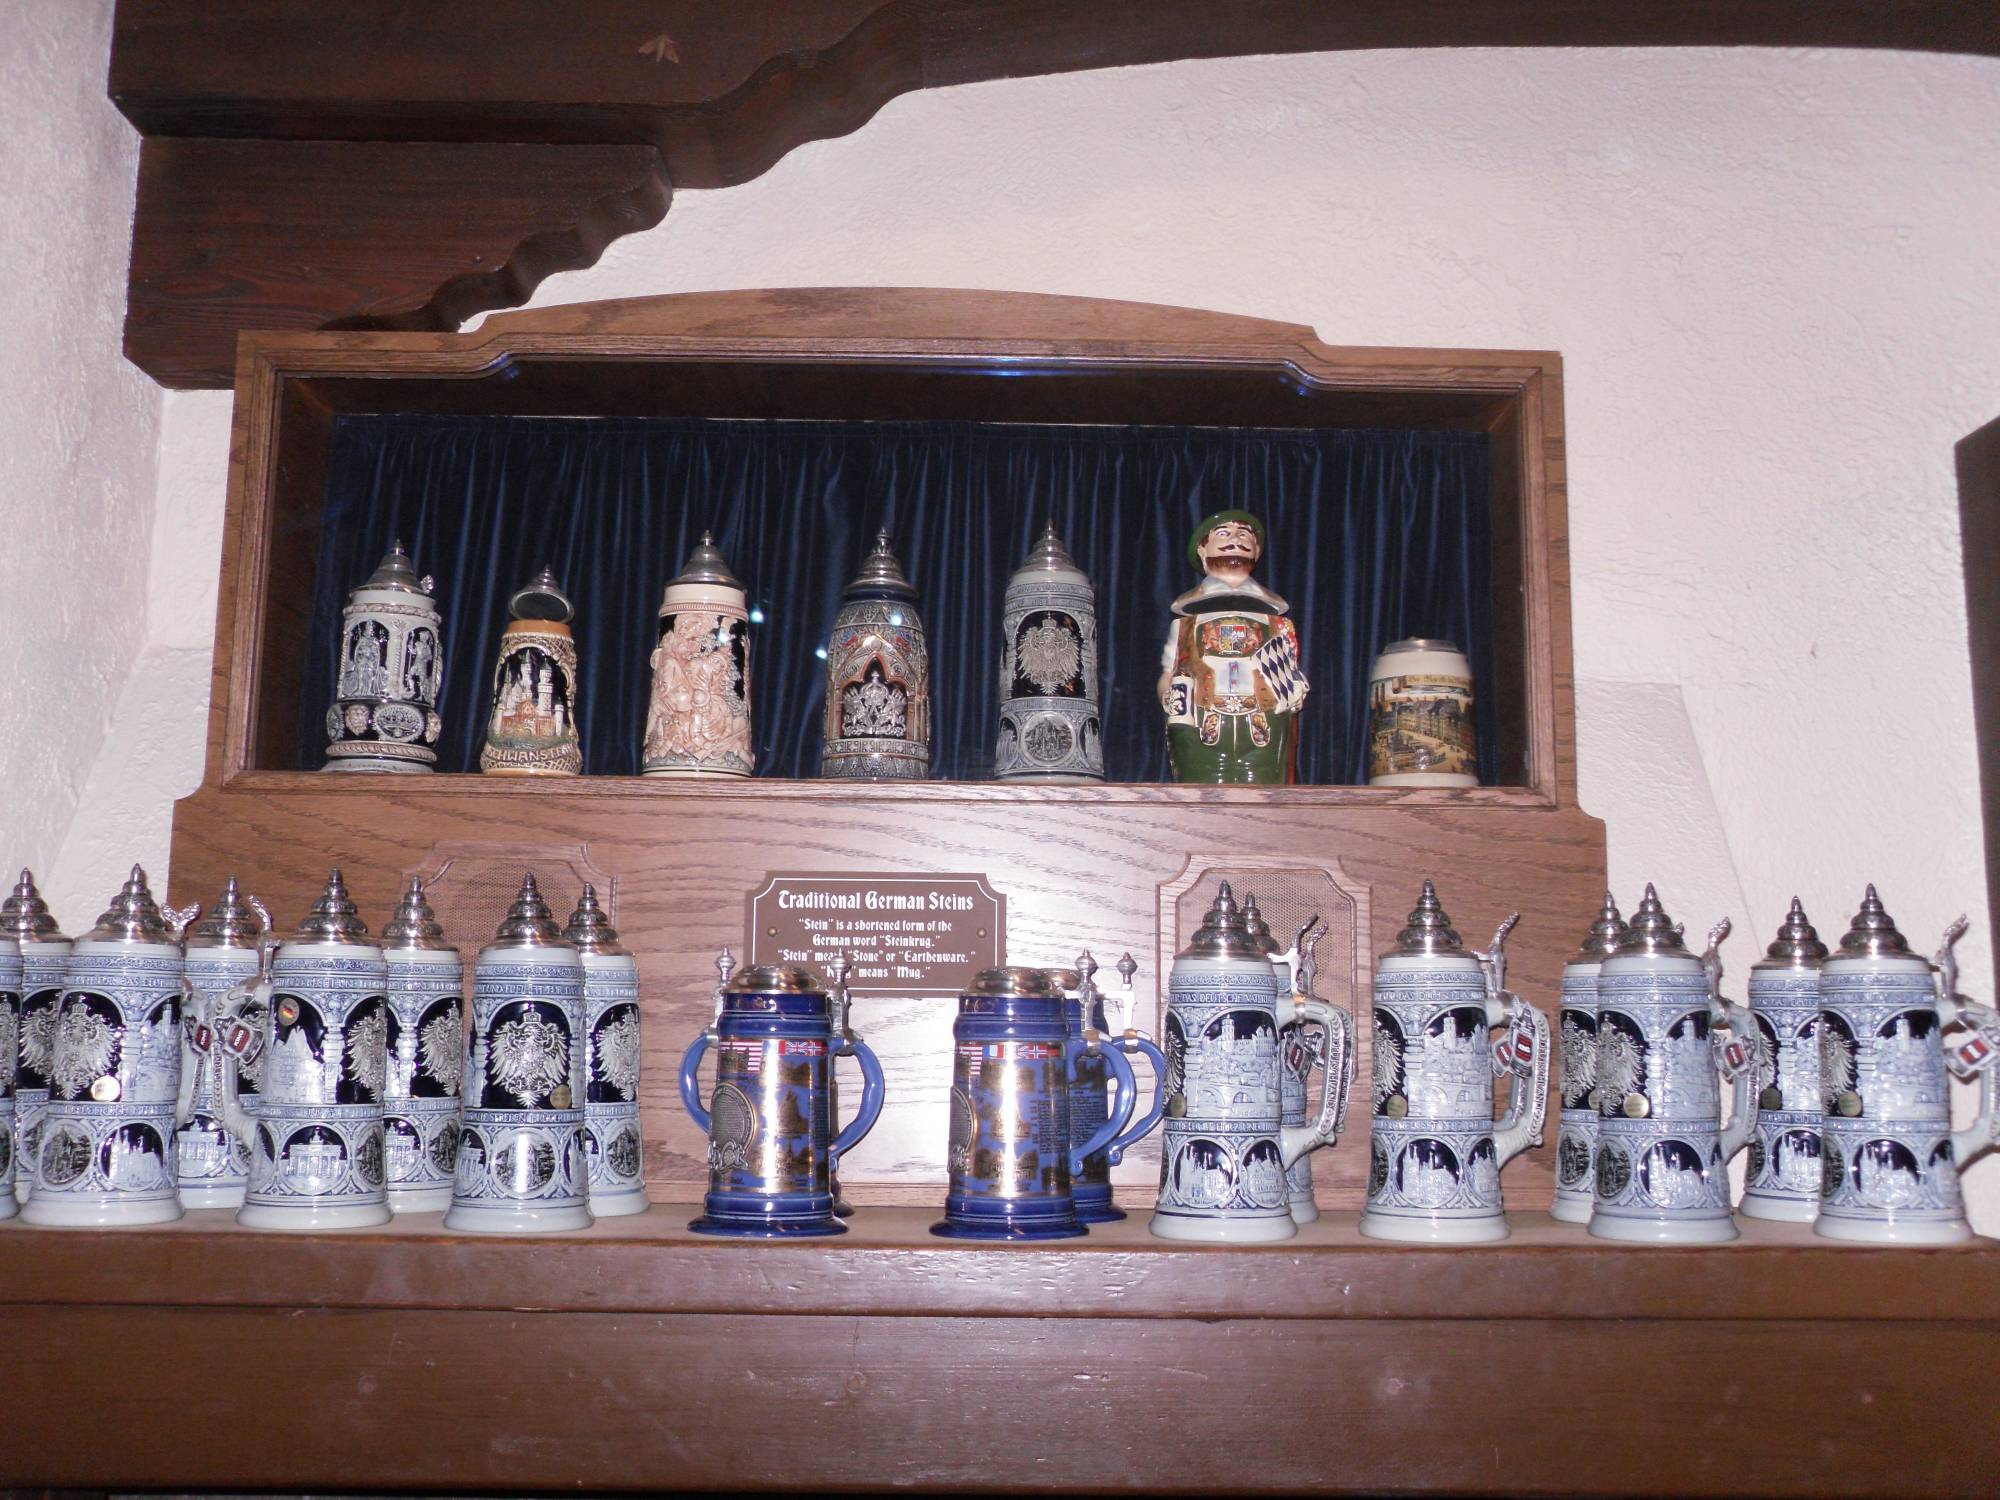 Beer steins in Germany